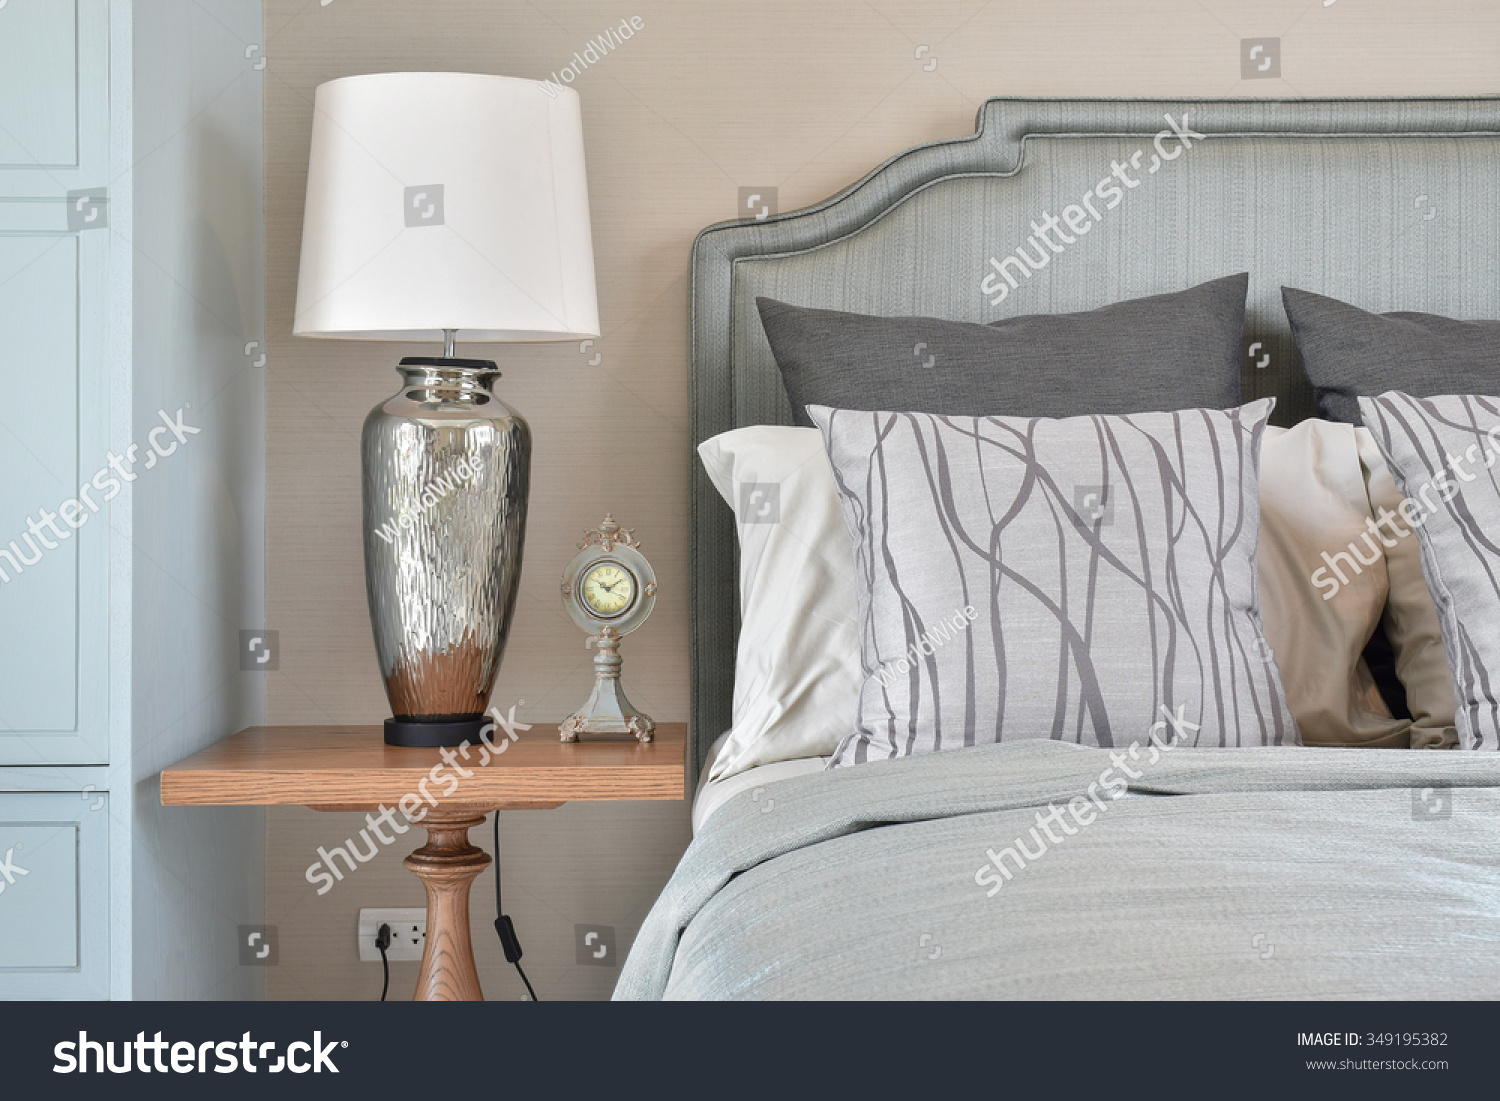 Silver base table lamp clock classic stock photo 349195382 silver base table lamp with clock and classic gorgeous bedding style geotapseo Choice Image